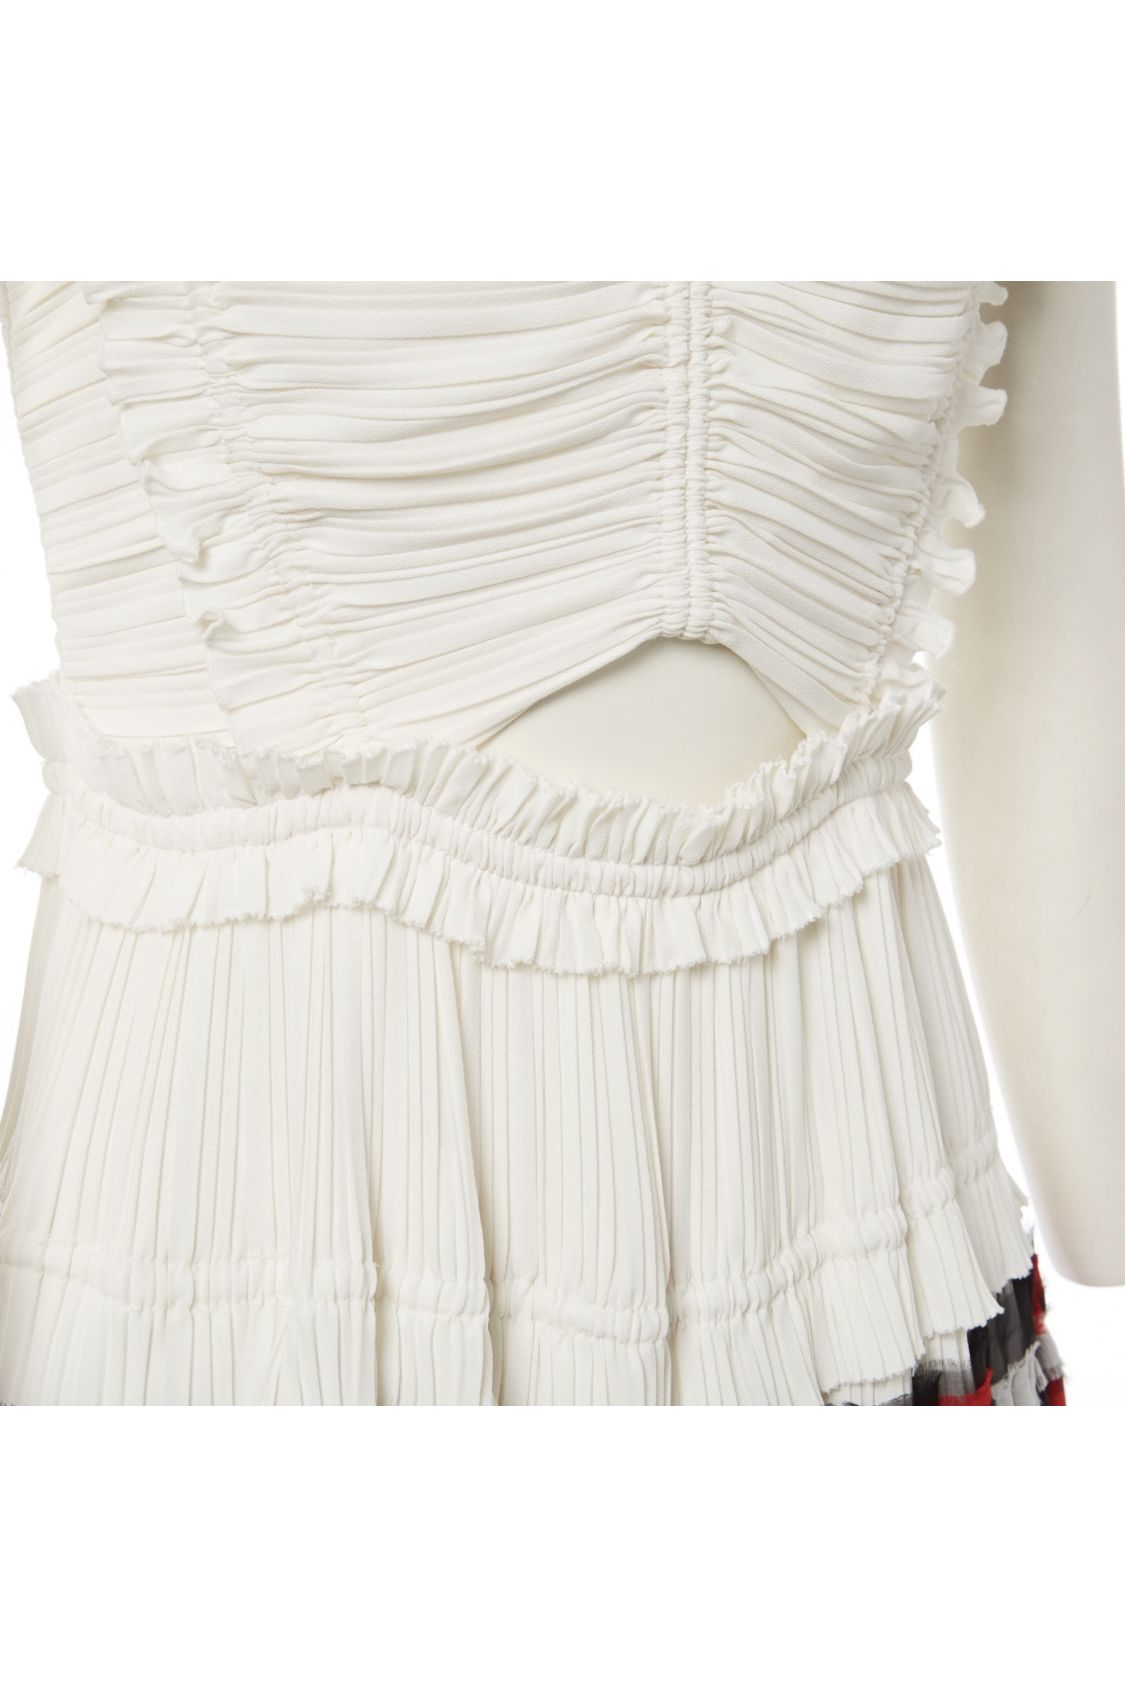 3.1 Phillip Lim Pleated Cream Dress 4 Preview Images